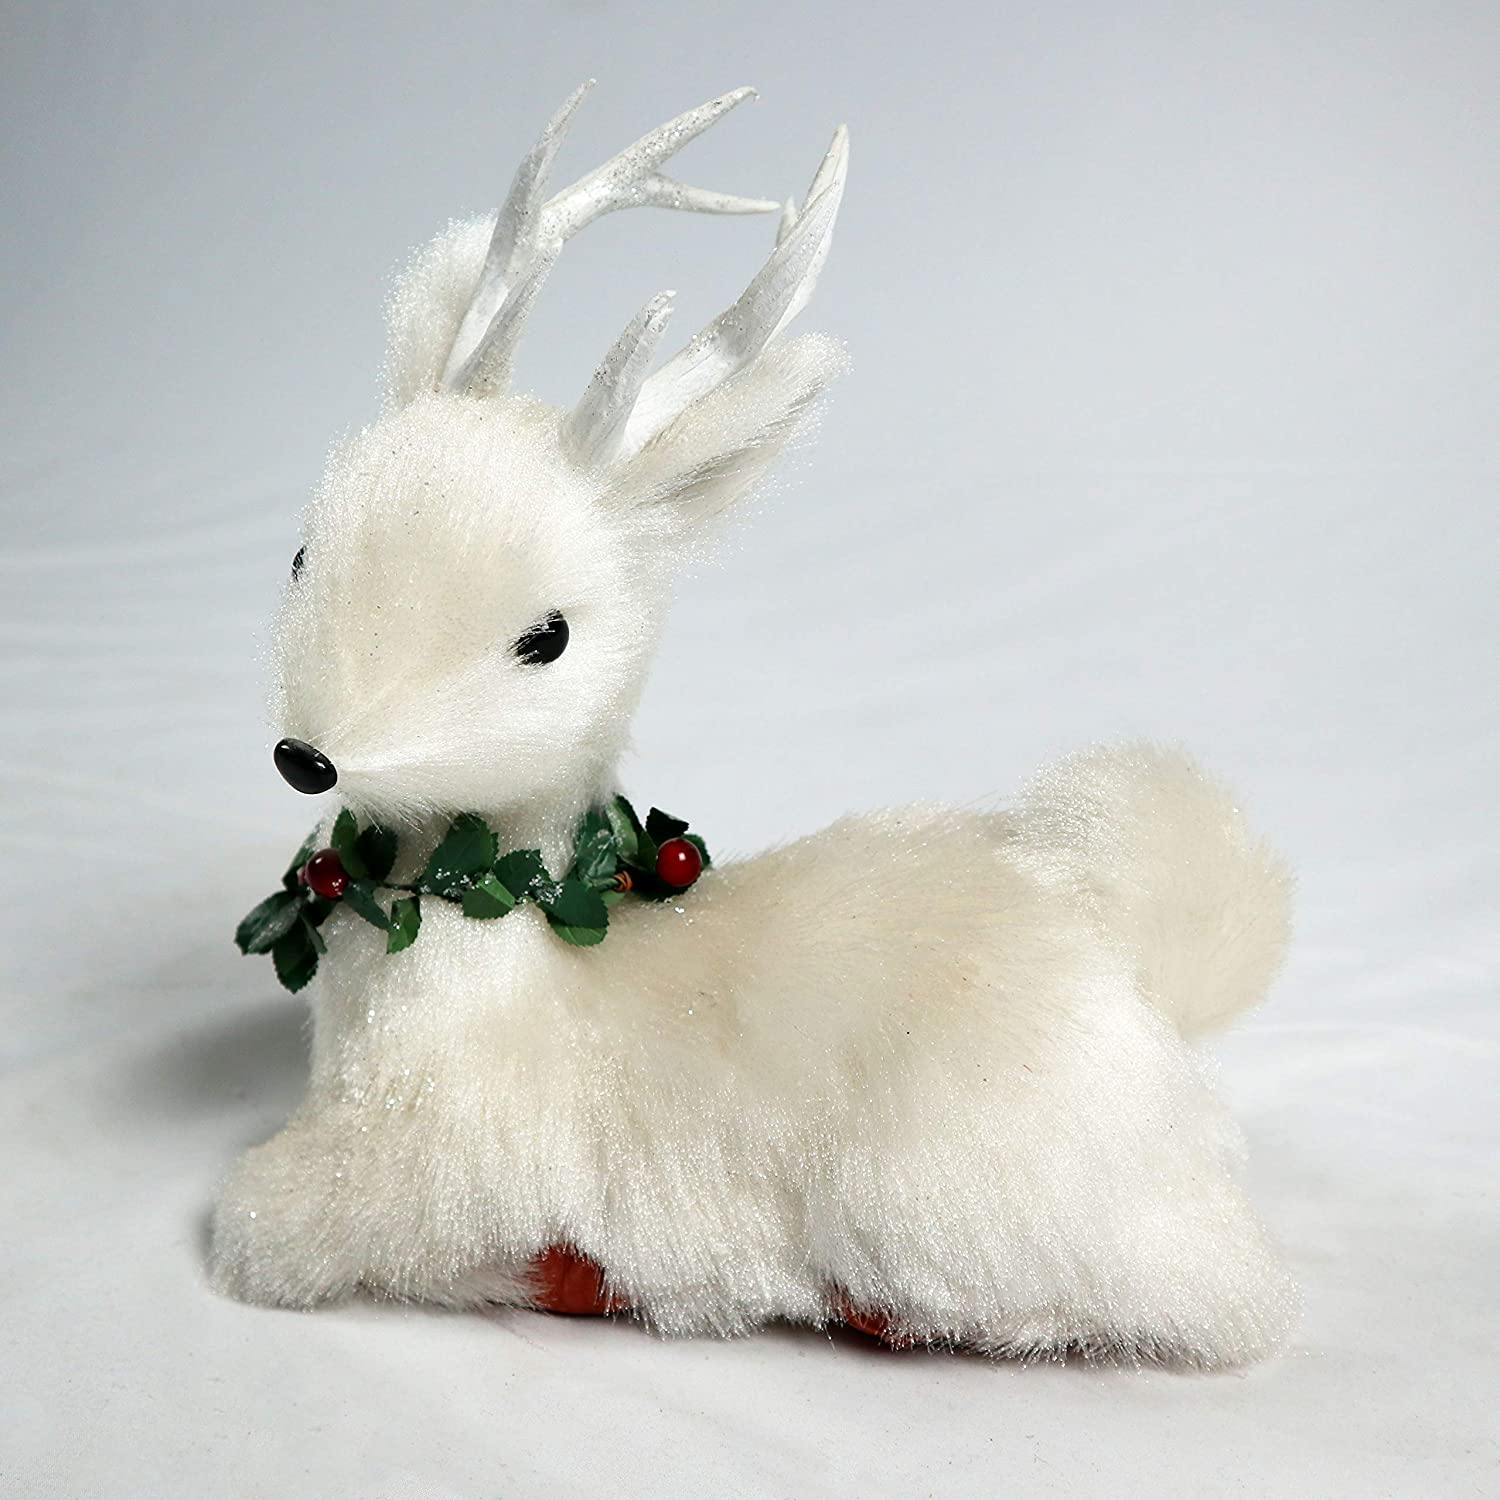 SHATCHI 25cm Lying Deer Christmas Tabletop Centrepiece Decorated with Pines Berries Showpieces Home Art /& Craft Xmas Party Window D/écor white deer